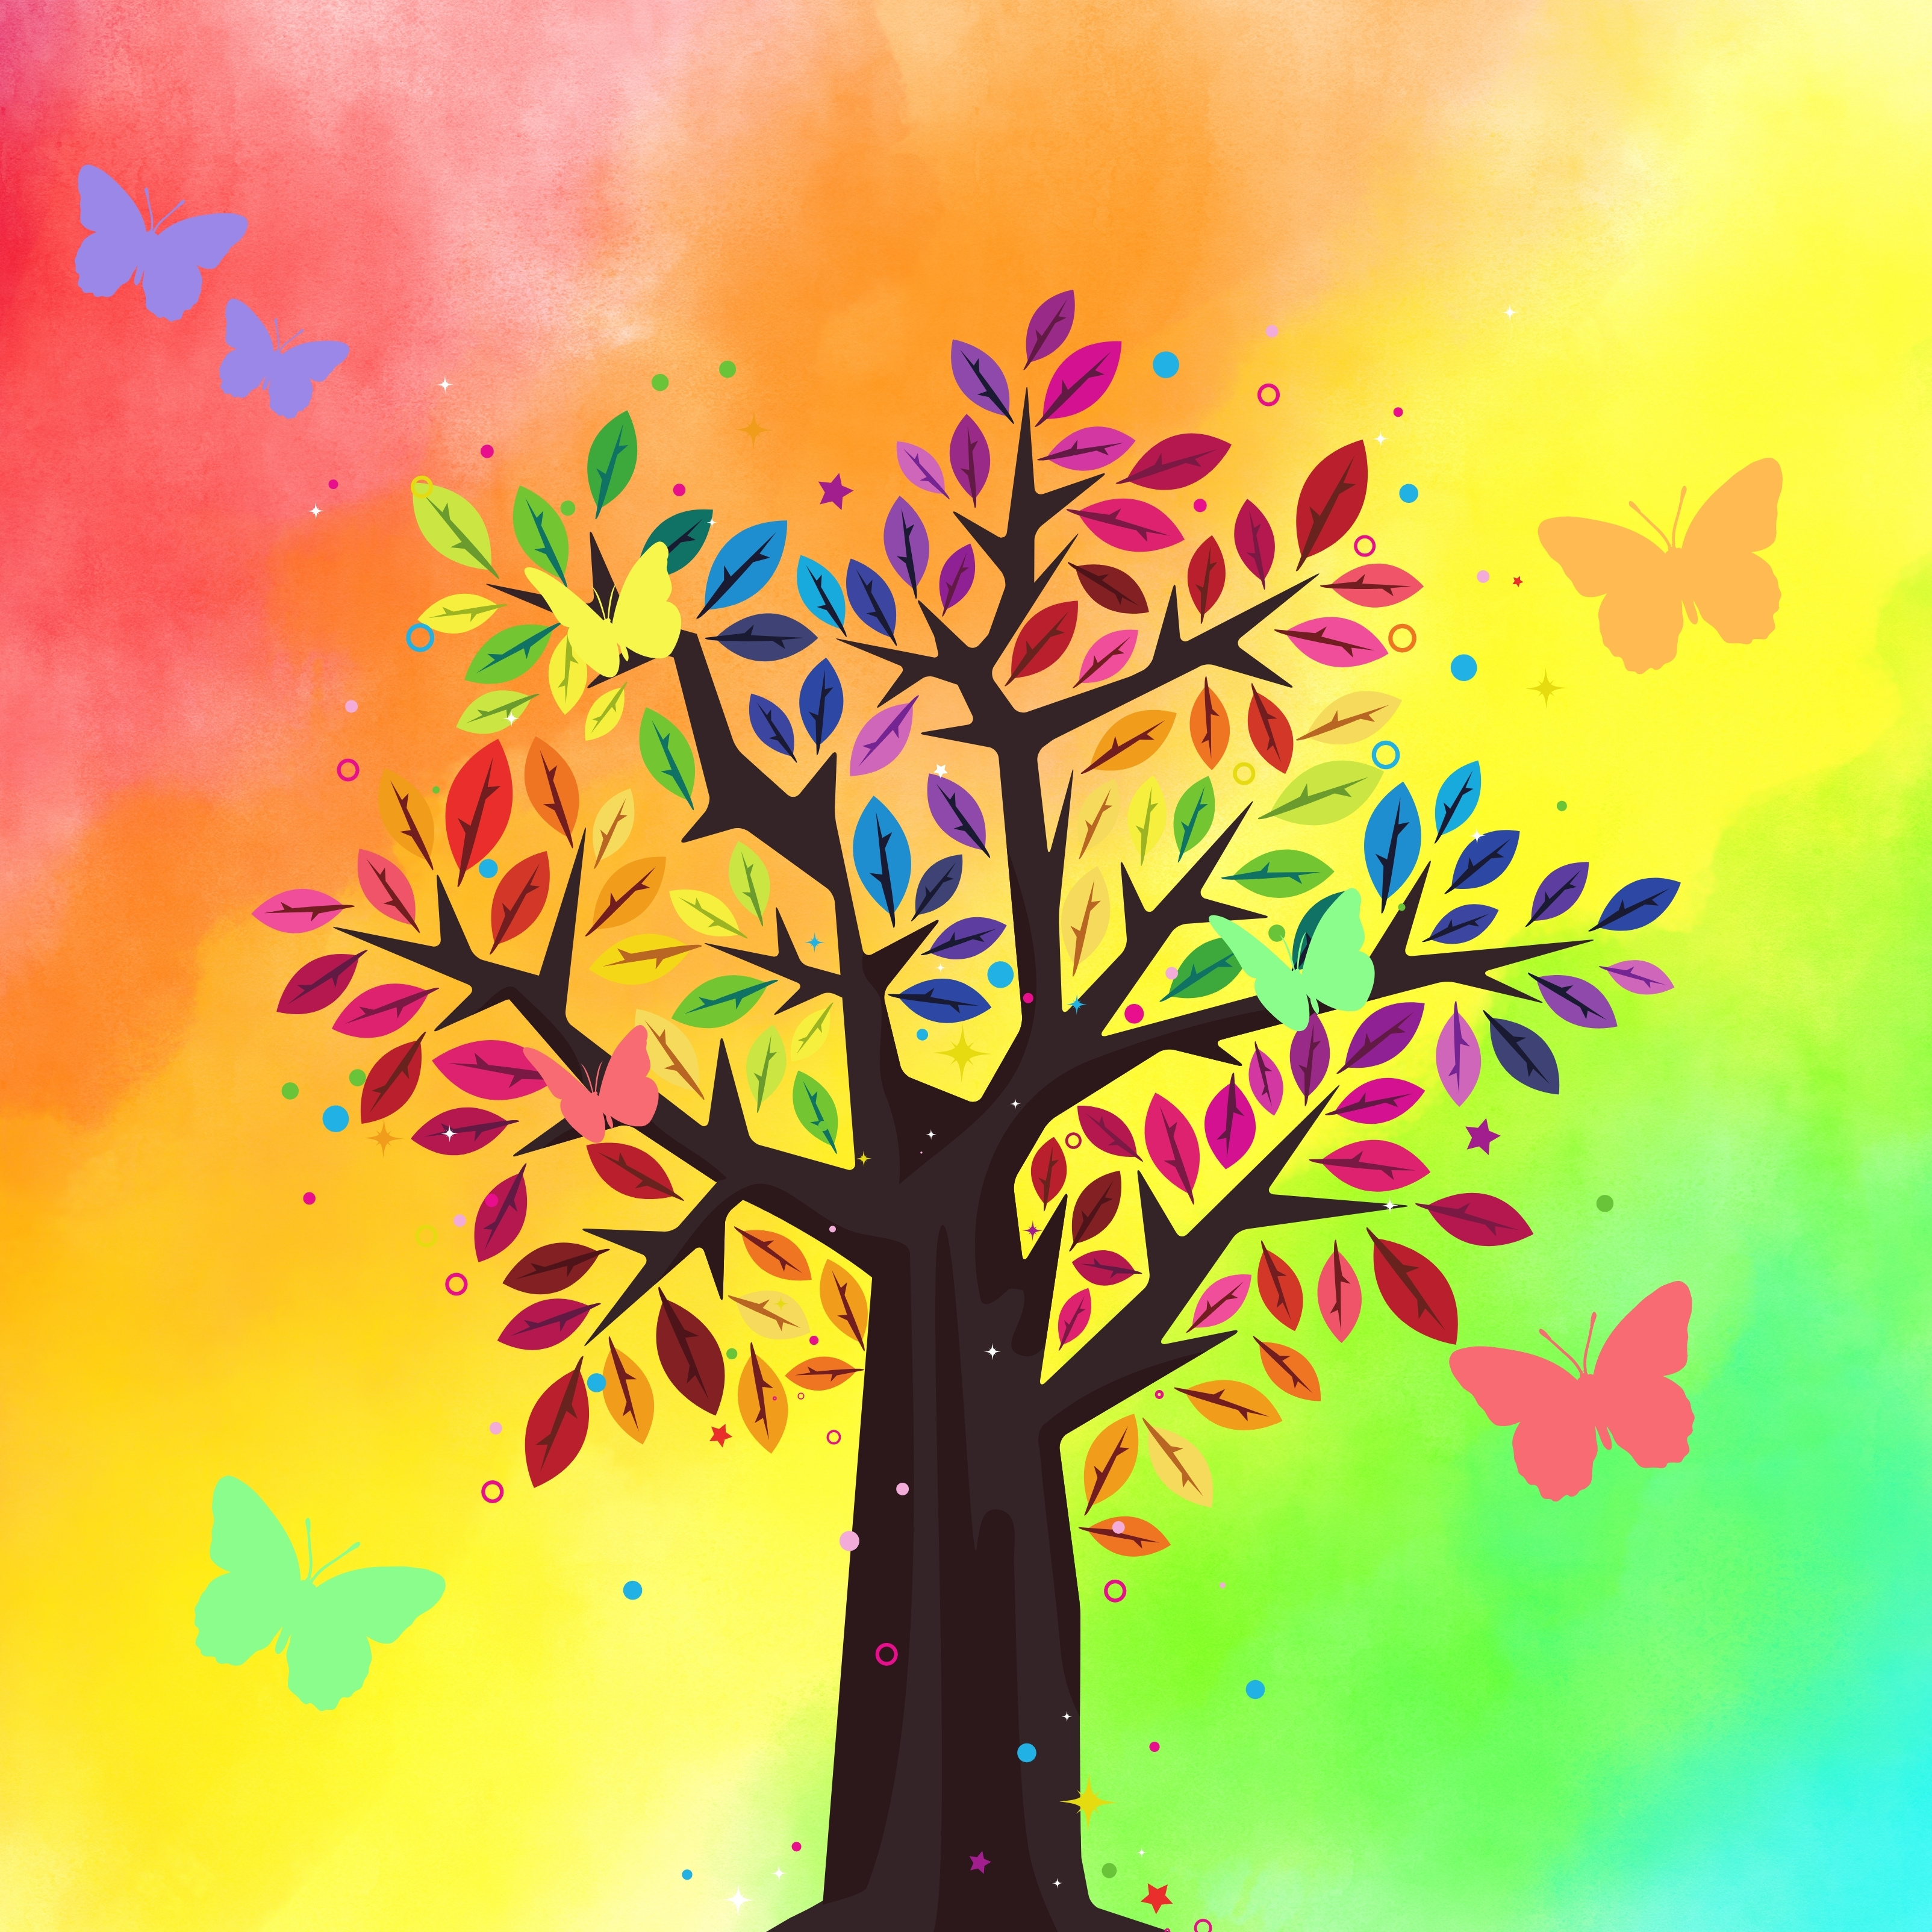 iPad Air 2 wallpapers Tree Rainbow Colorful Butterfly iPad Wallpaper